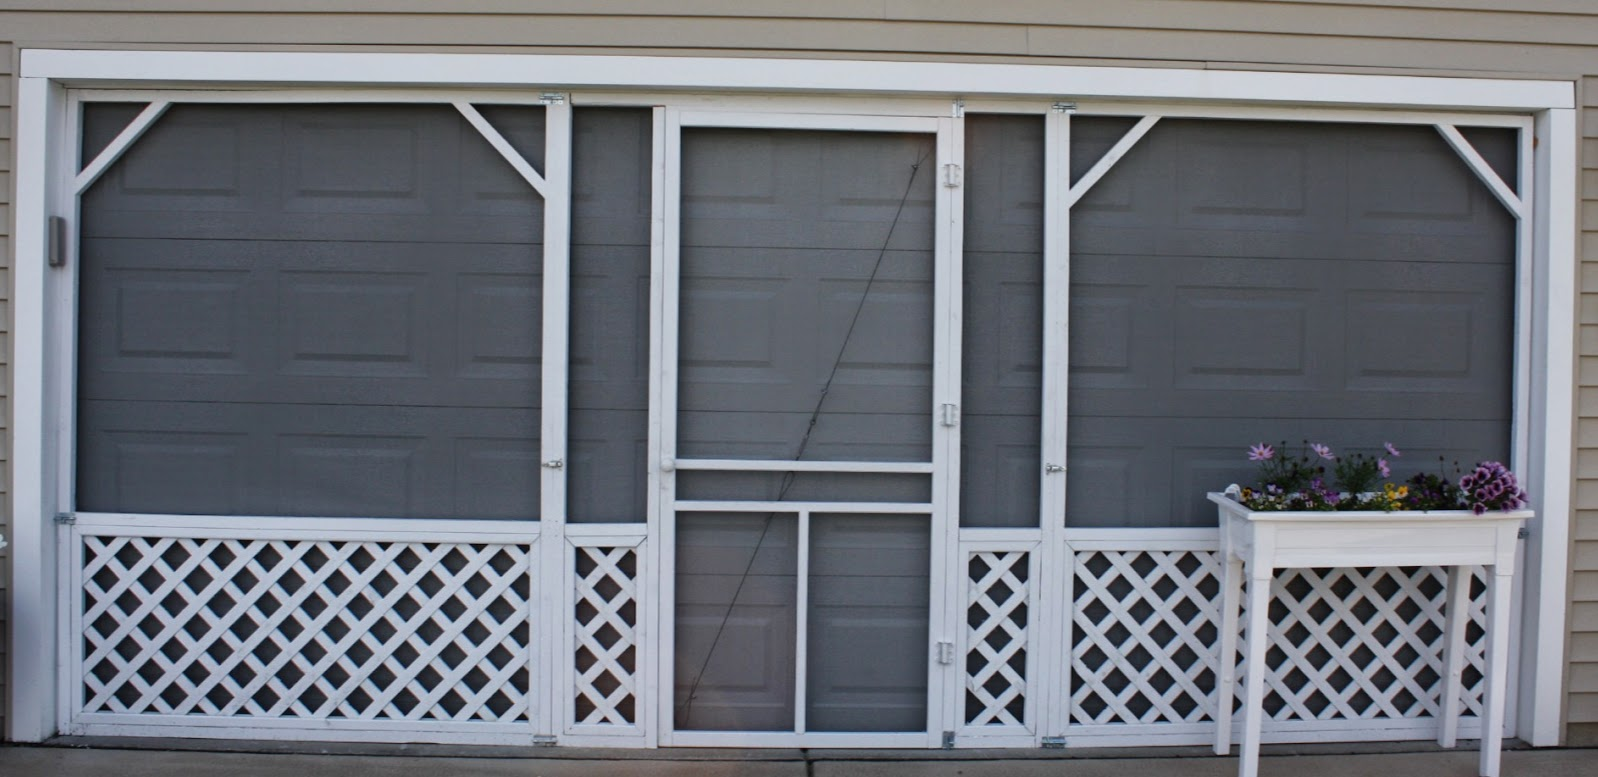 Ryan homes florence in buffalo: diy garage screen